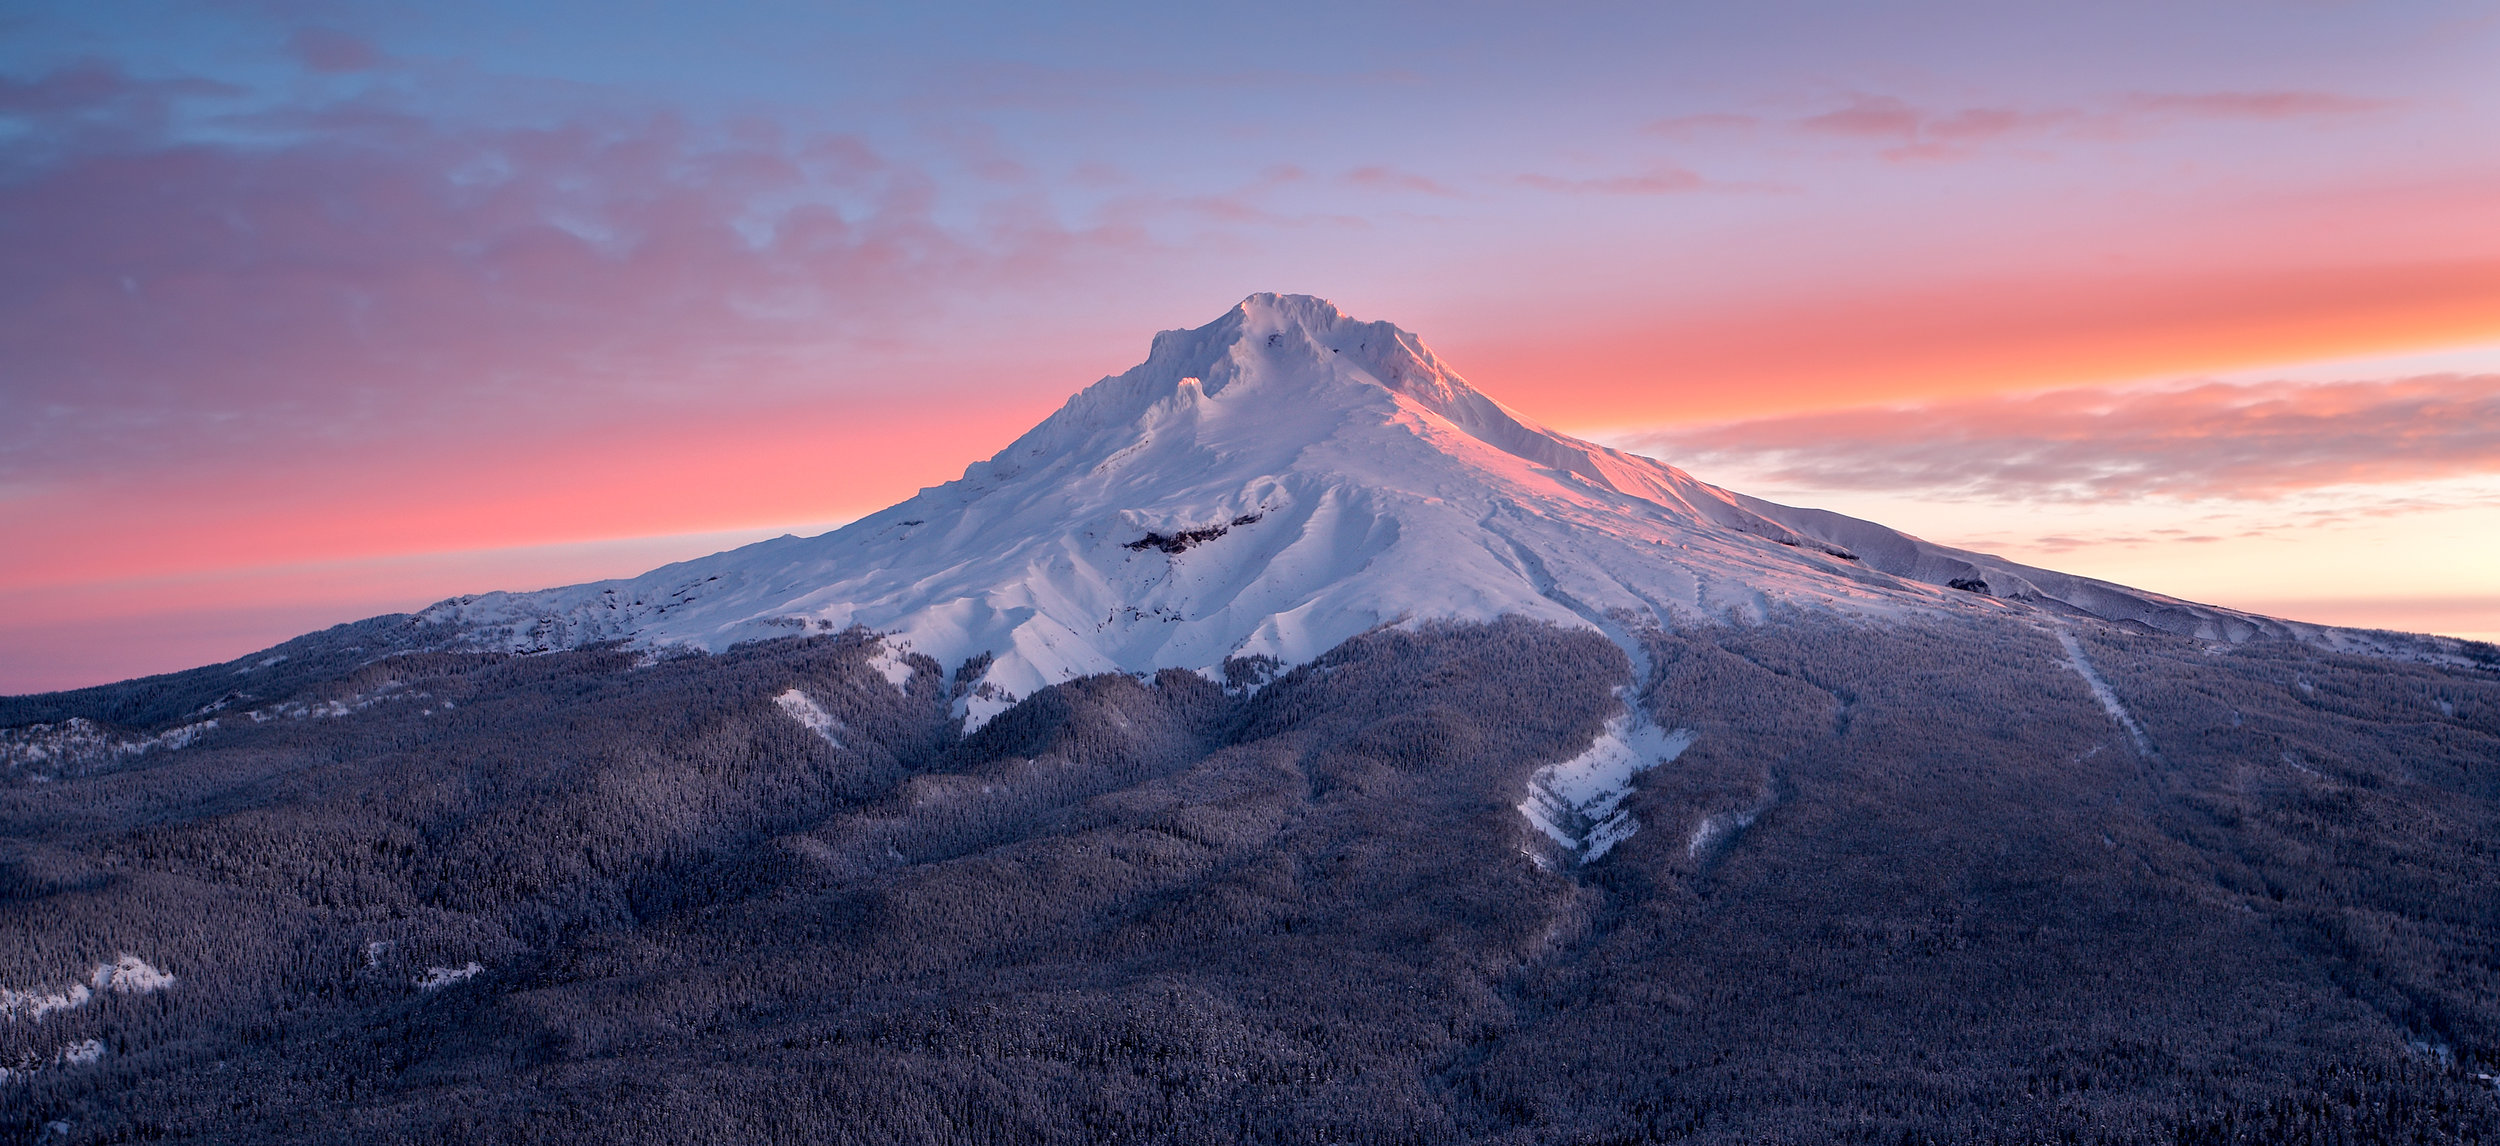 Mount Hood At Sunrise | Mount Hood National Forest – (Photo: Zschnepf/Shutterstock)